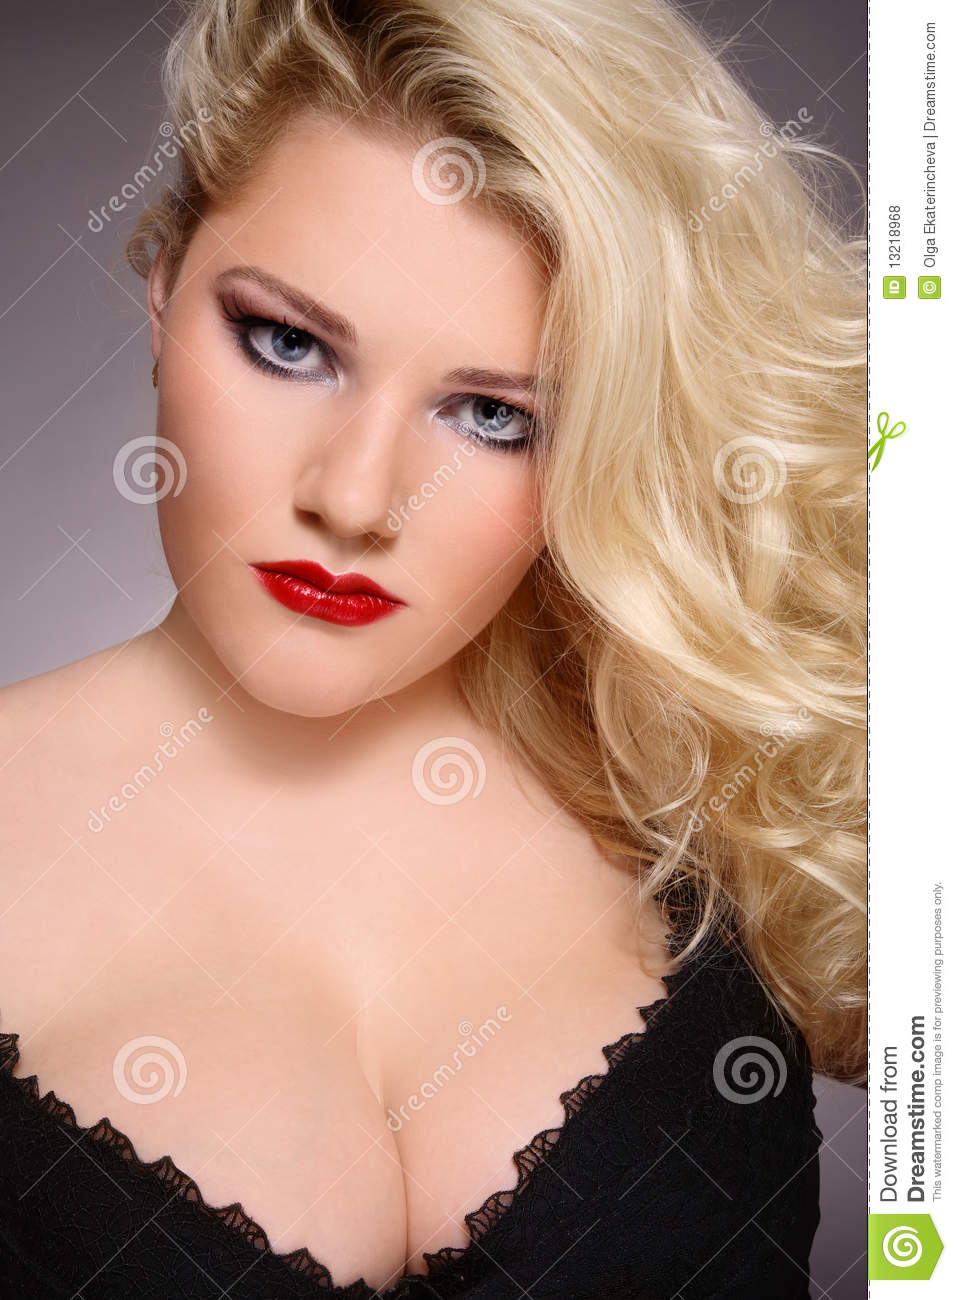 Plus-size Beauty Royalty Free Stock Photos